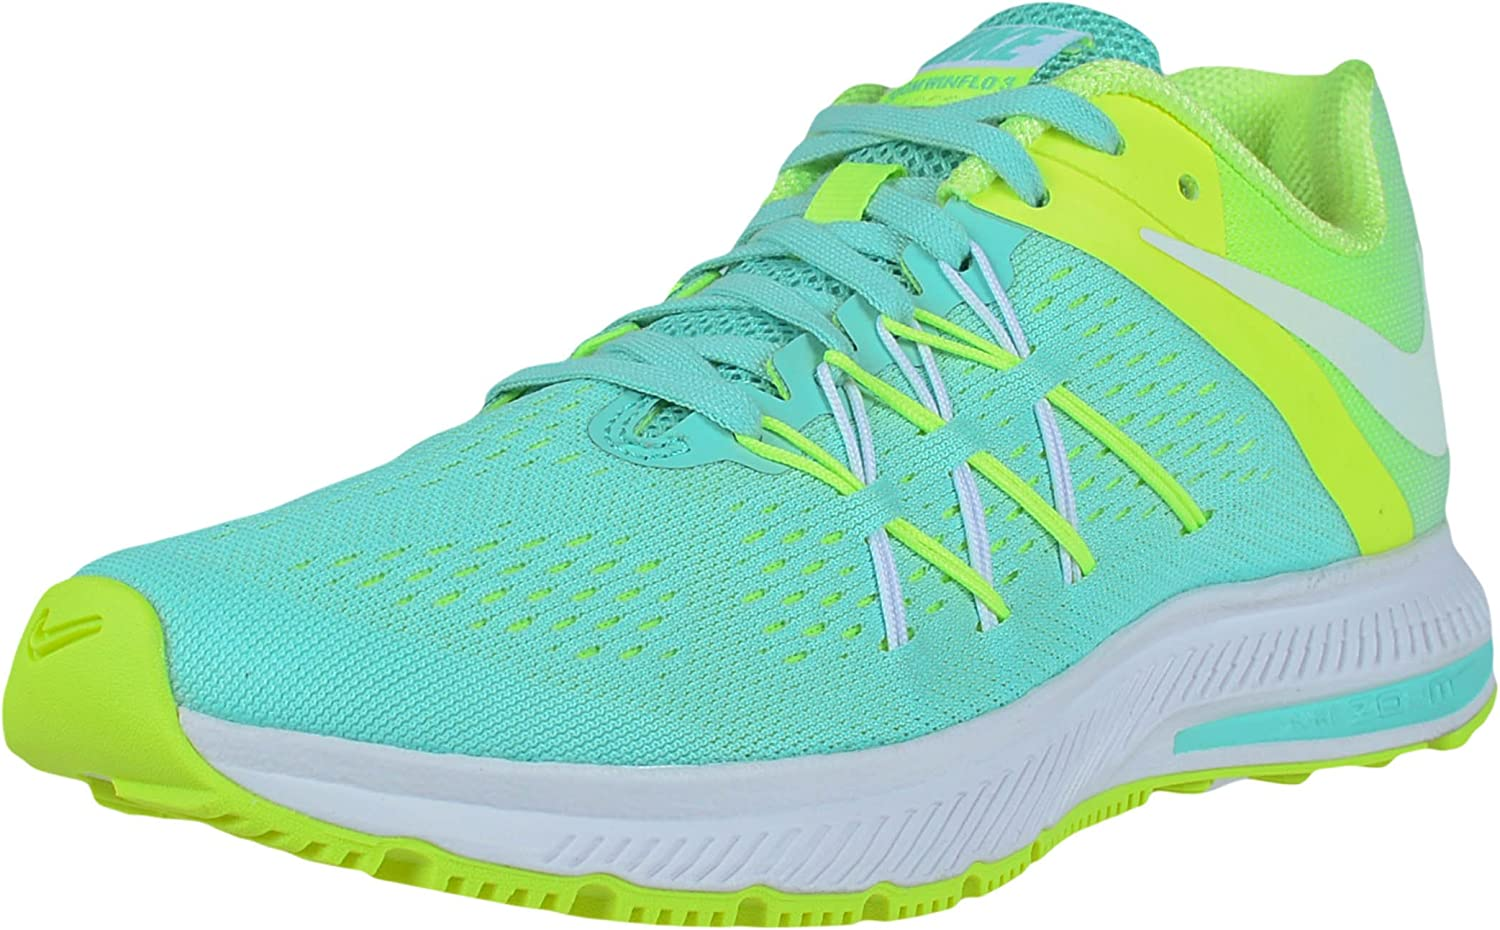 NIKE Women s Zoom Winflo 3 Running Shoe